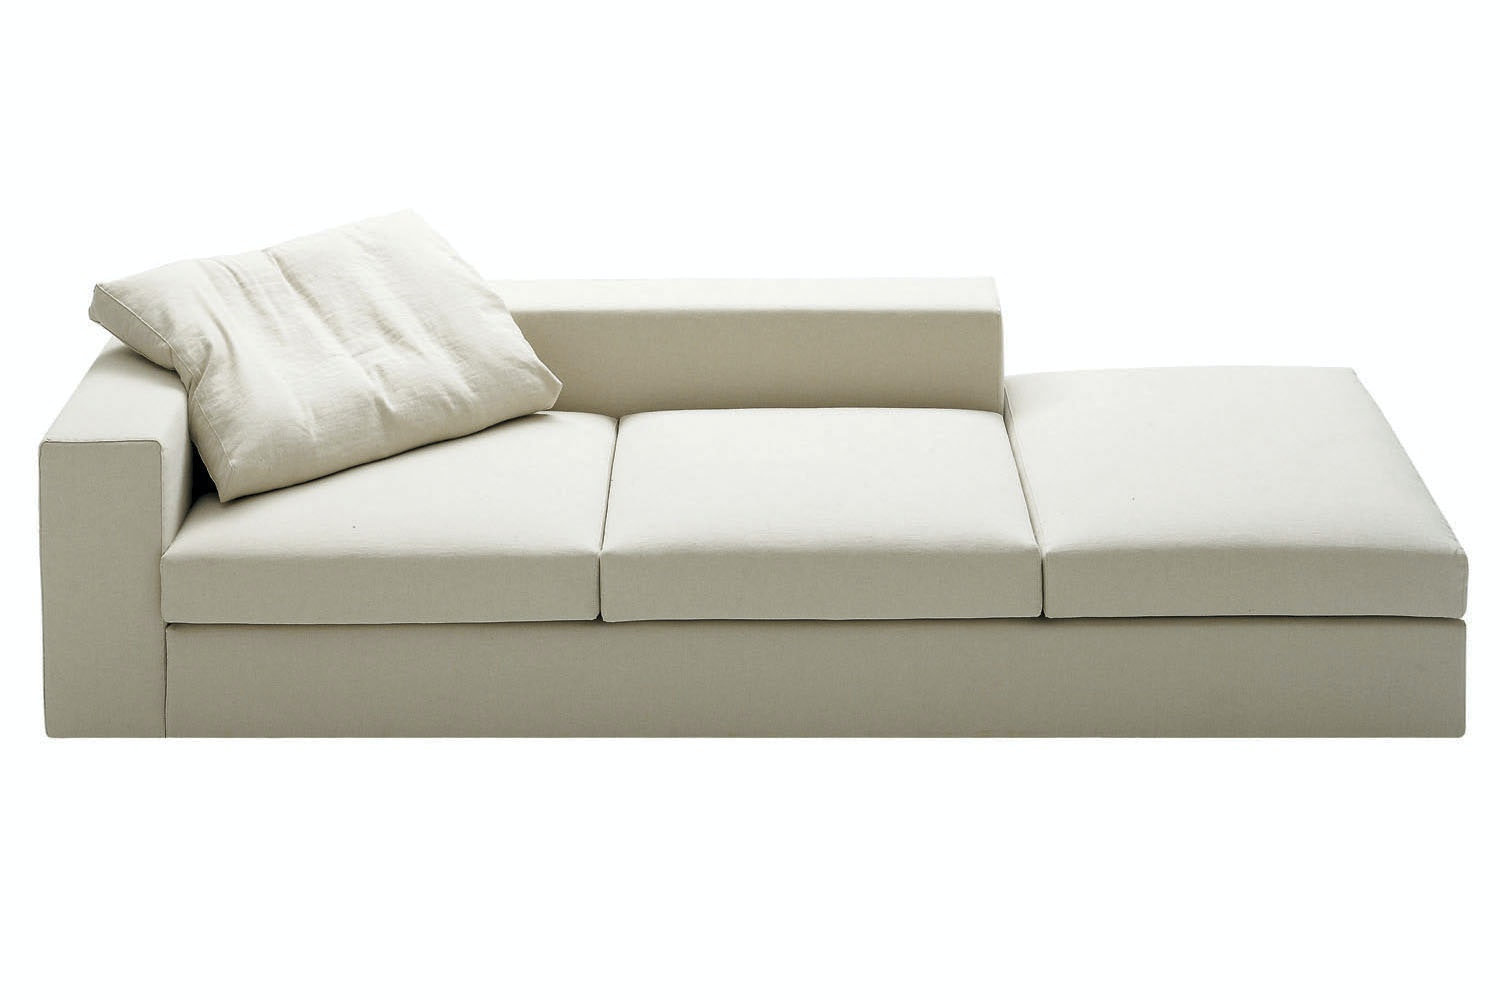 Beta Sofa by Mauro Lipparini for Zanotta